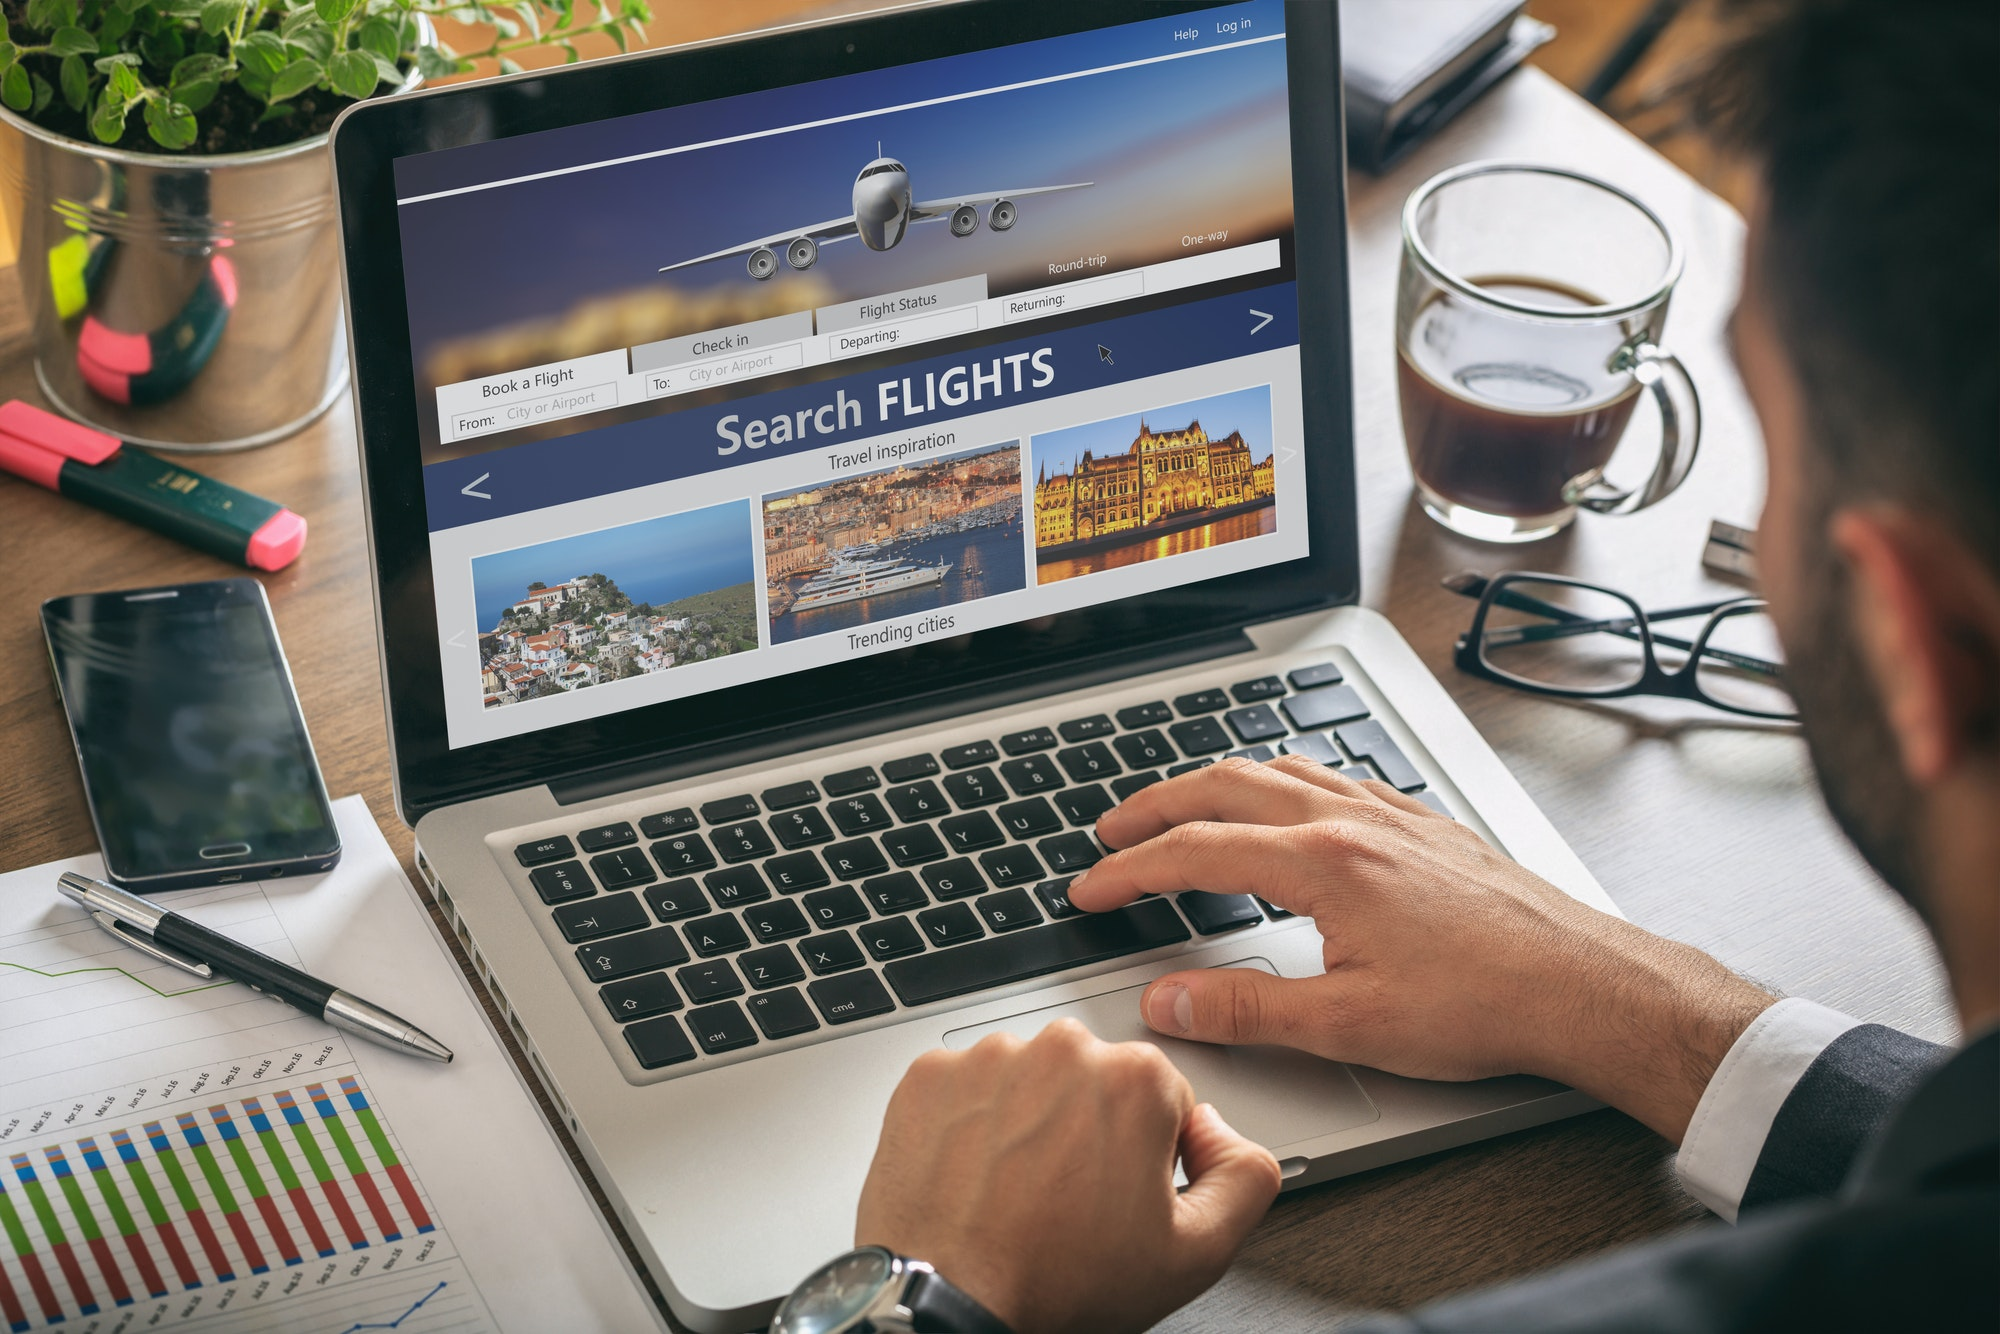 Man working with a computer, search flights on the screen, office business background.